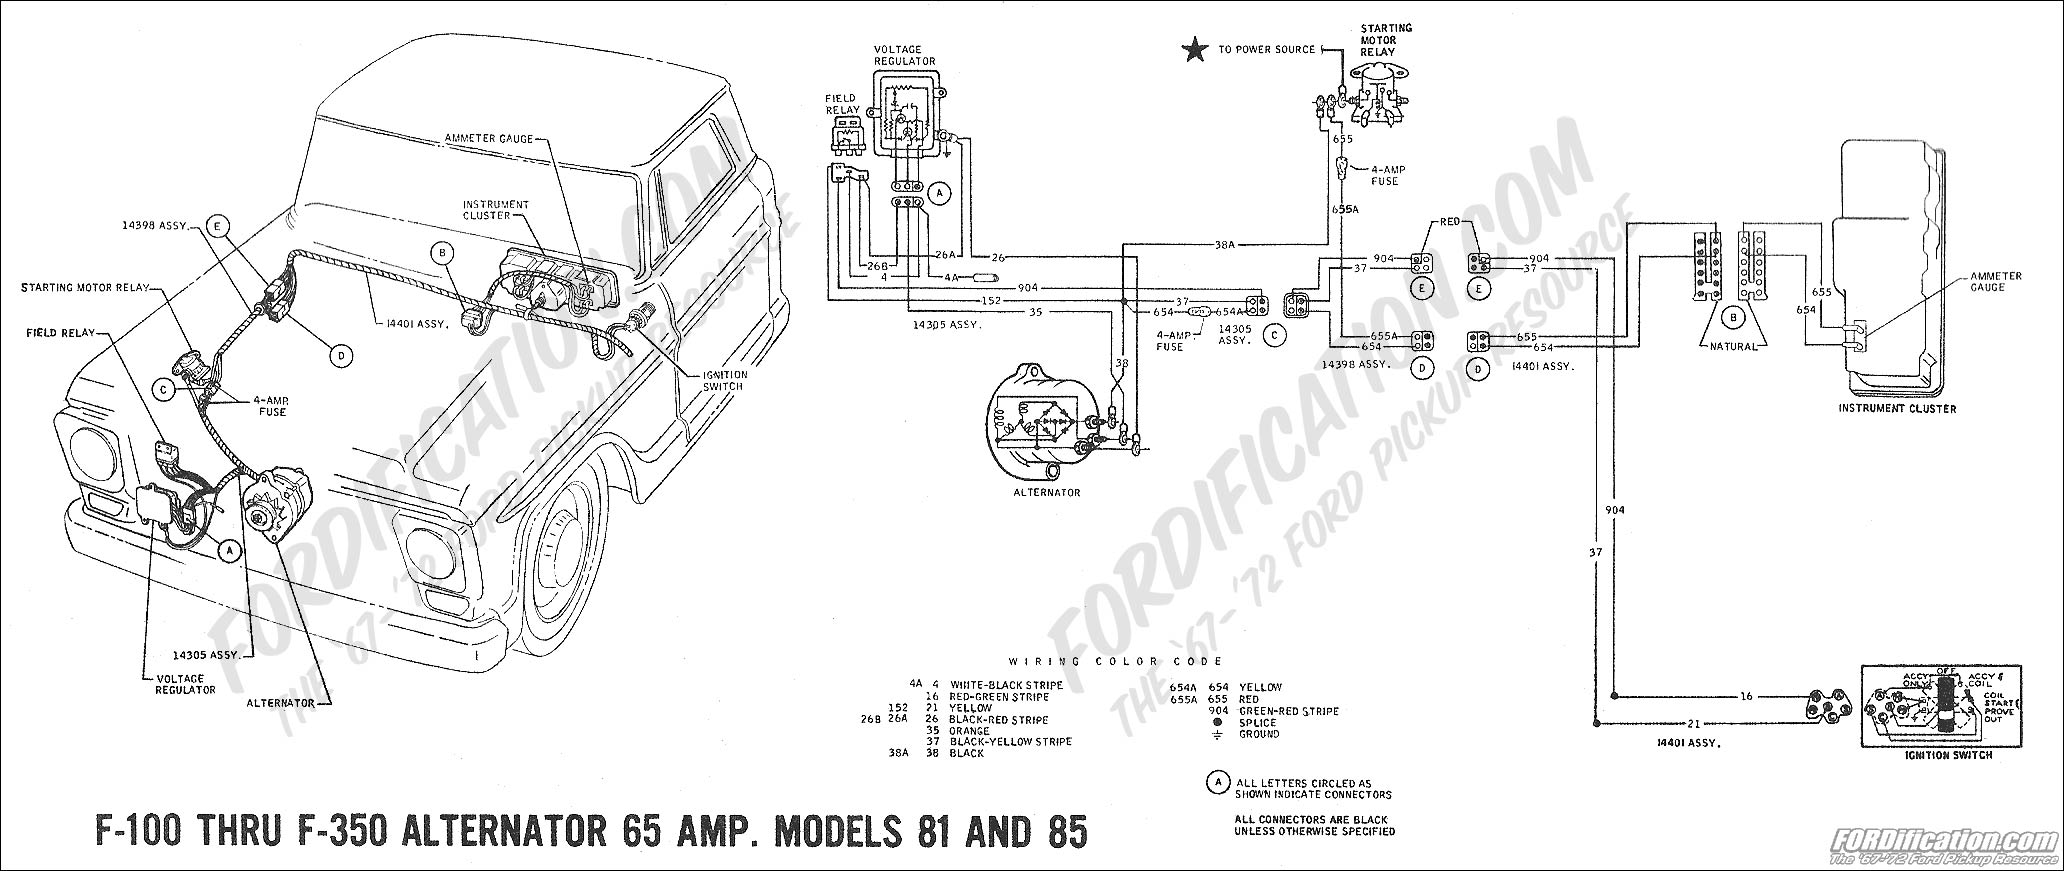 wiring_69charging03 1977 ford f100 alternator wiring diagram wiring diagram and 65 ford f100 wiring diagram at webbmarketing.co